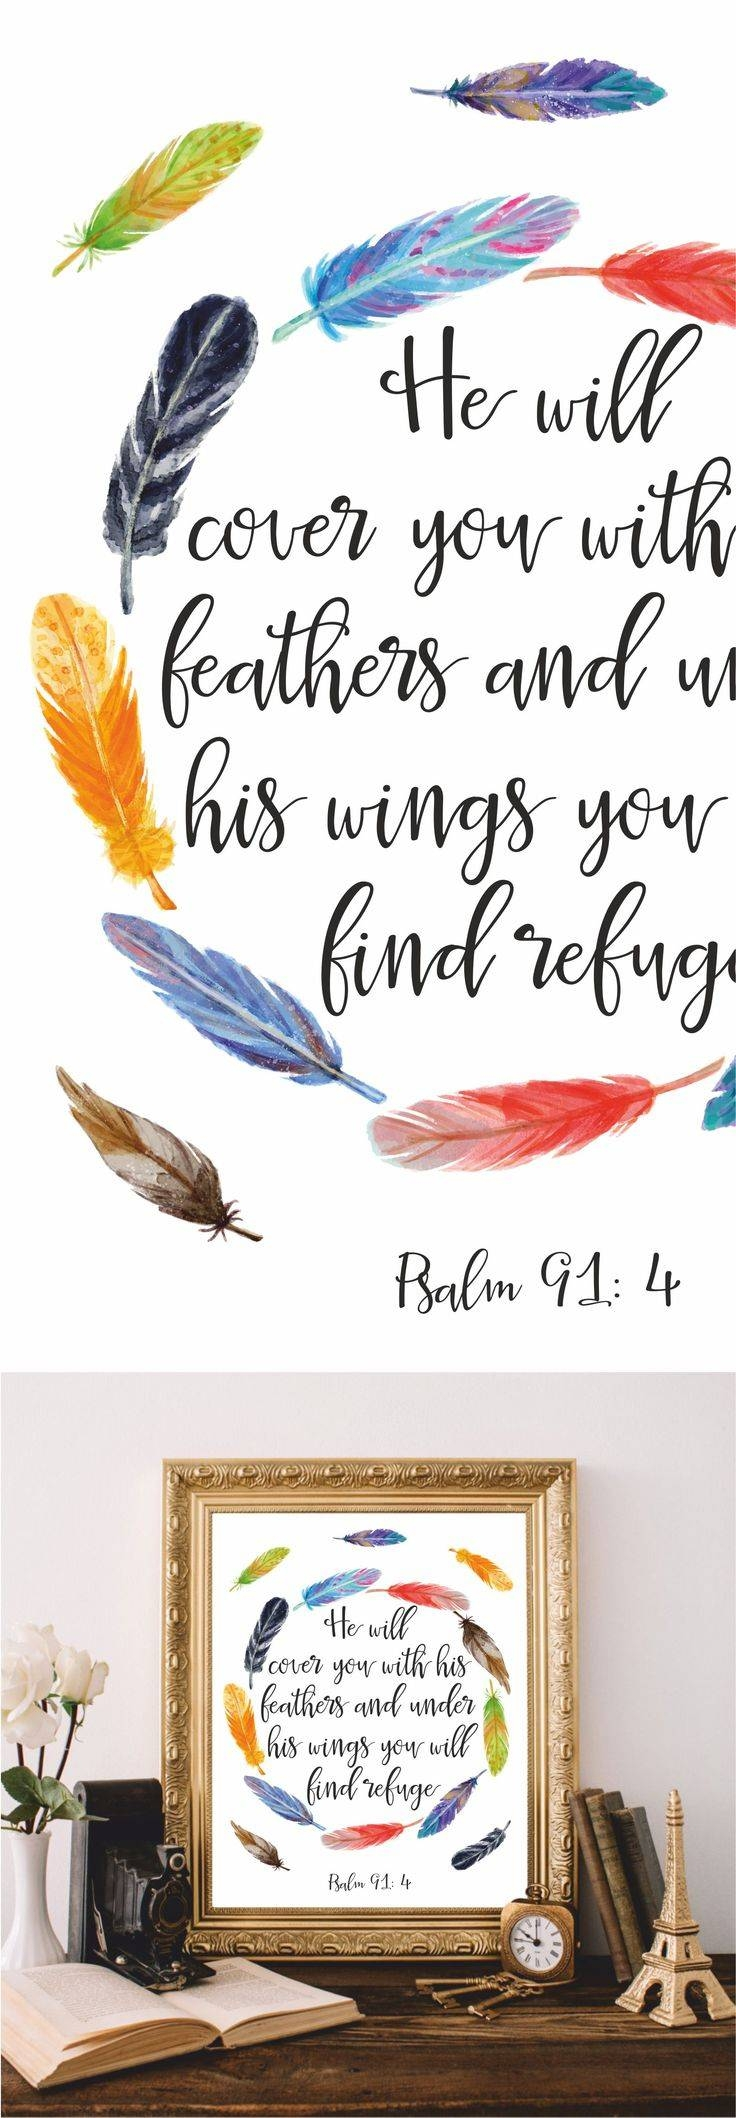 Best 25+ Scripture Wall Art Ideas On Pinterest | Bible Verse Signs For Most Recently Released Bible Verses Wall Art (View 5 of 30)